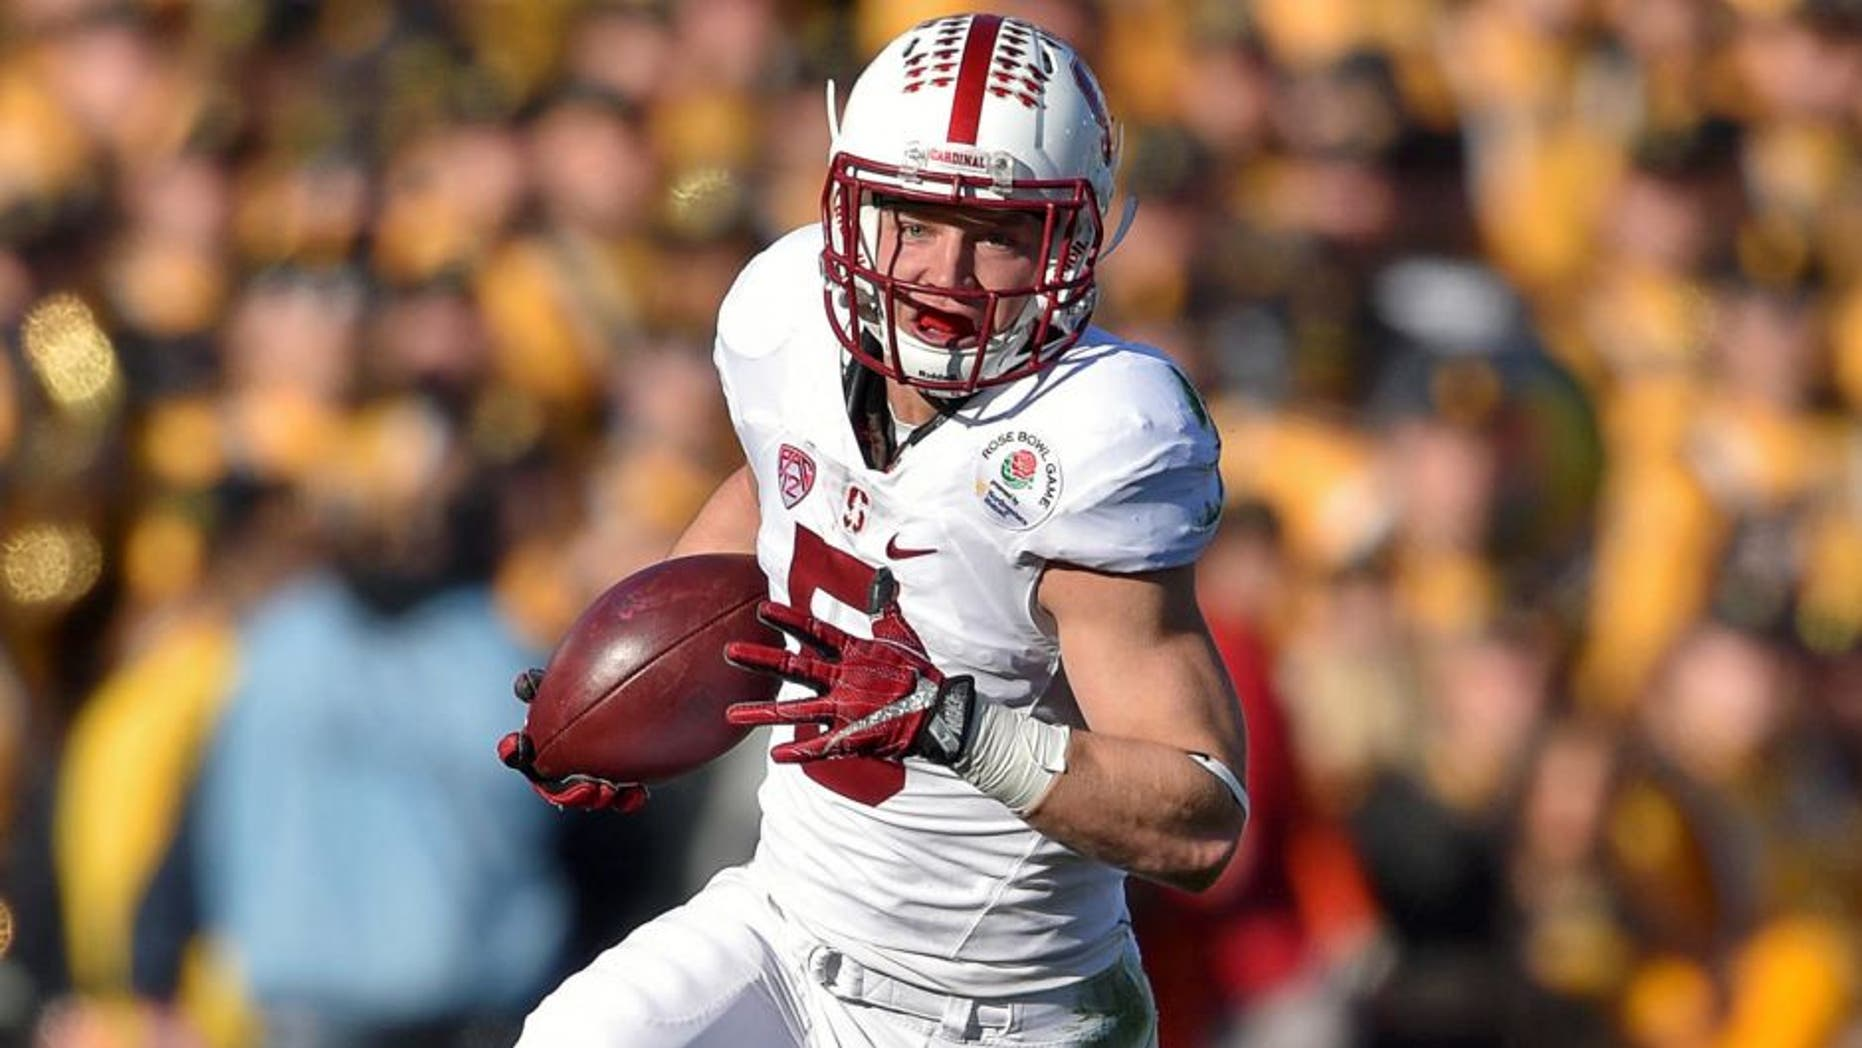 Jan 1, 2016; Pasadena, CA, USA; Stanford Cardinal running back Christian McCaffrey (5) runs against the Iowa Hawkeyes during the first quarter in the 2016 Rose Bowl at Rose Bowl. Mandatory Credit: Kirby Lee-USA TODAY Sports